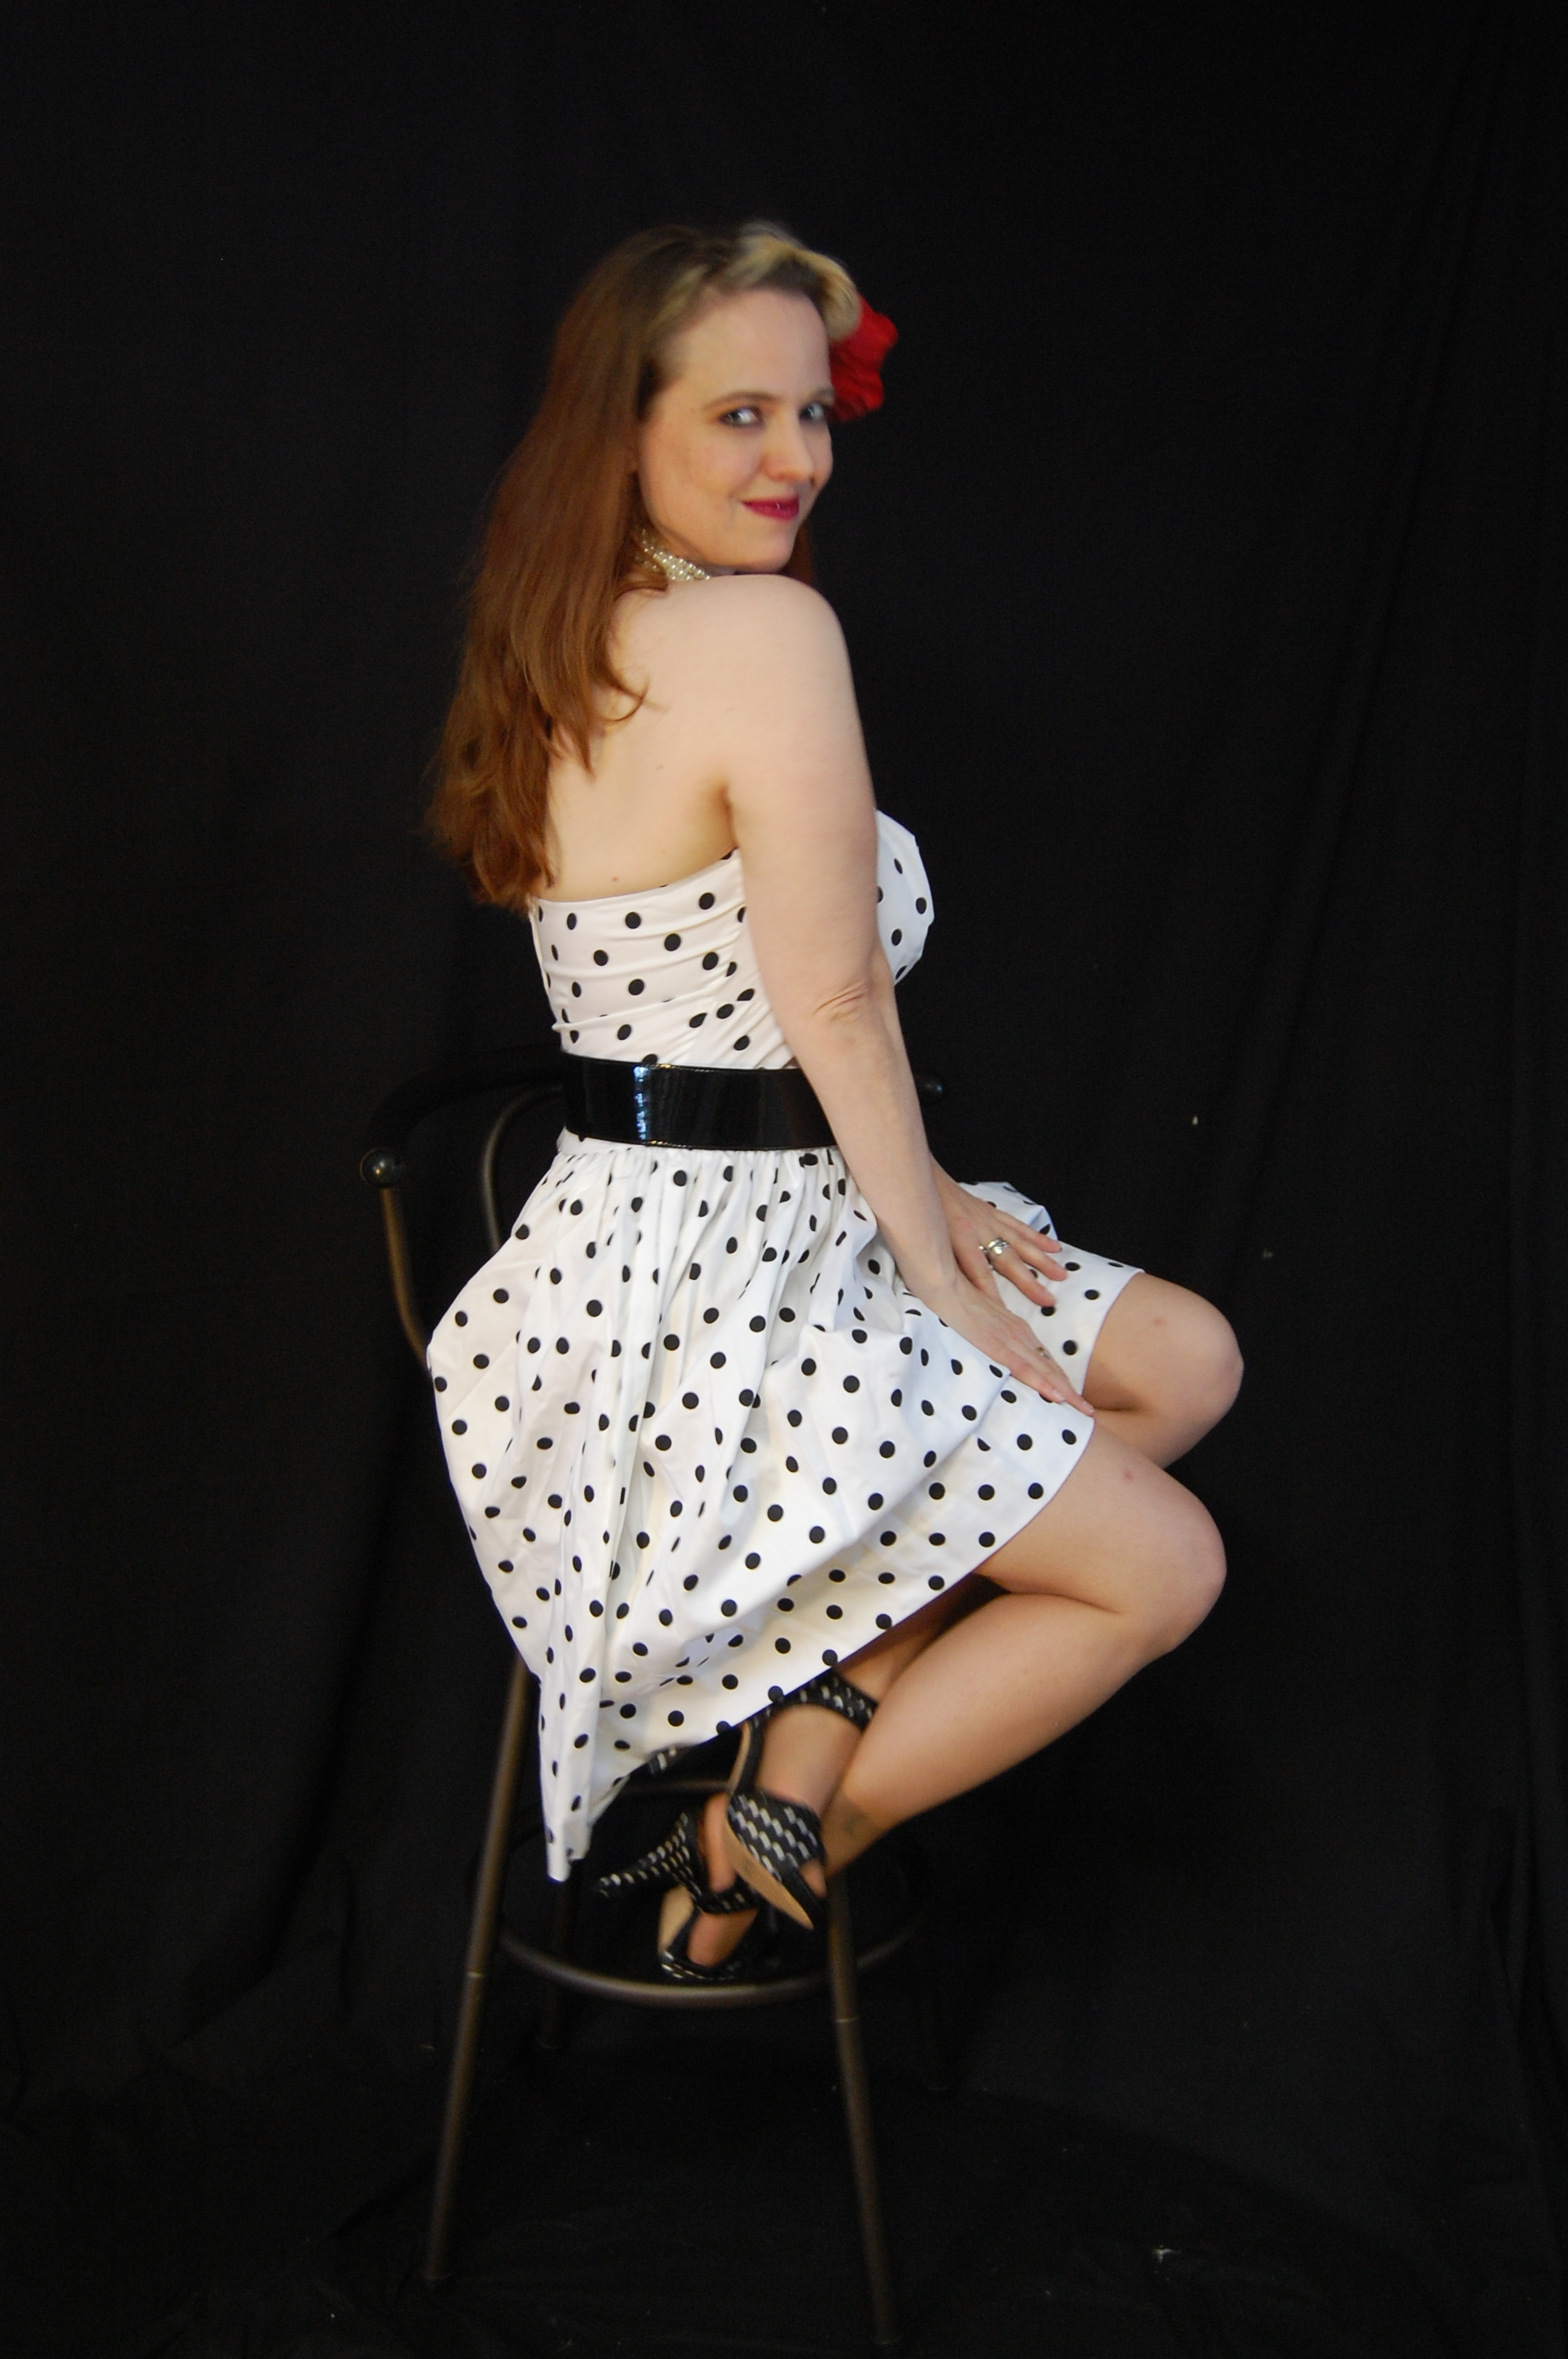 2010 Fife pinup white dress 0152